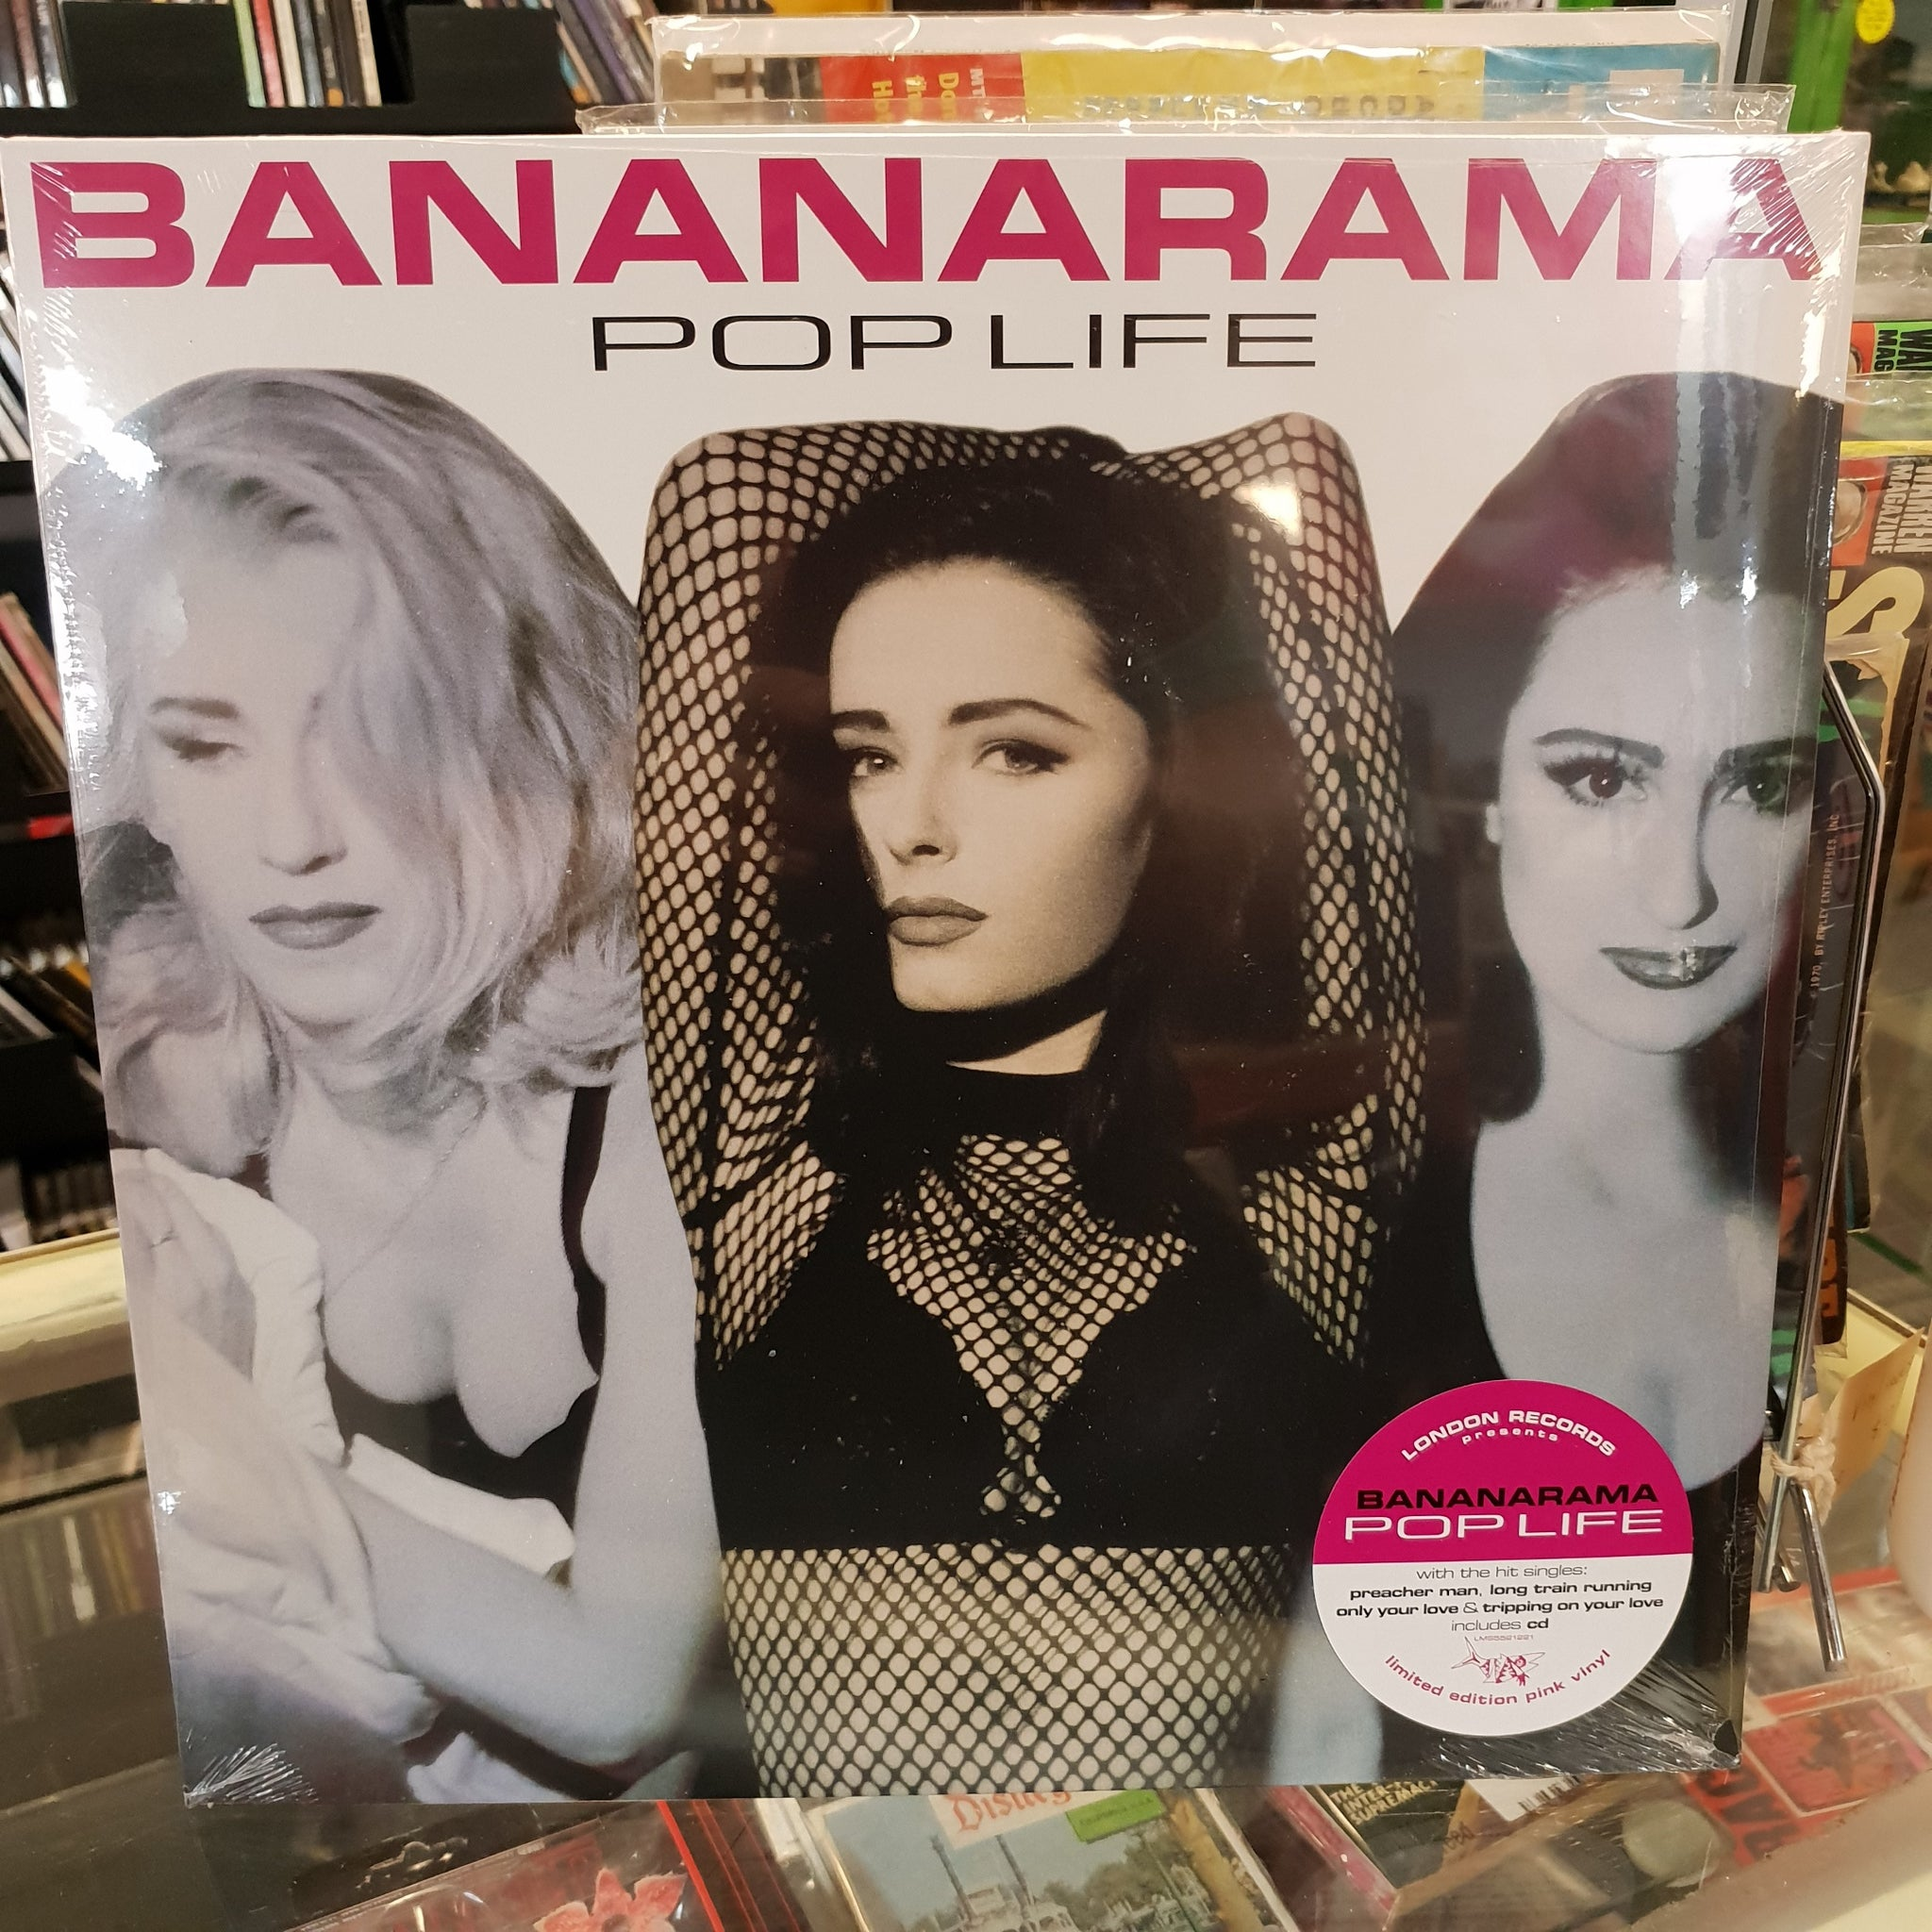 NEW - Bananarama, Pop Life Pink LP